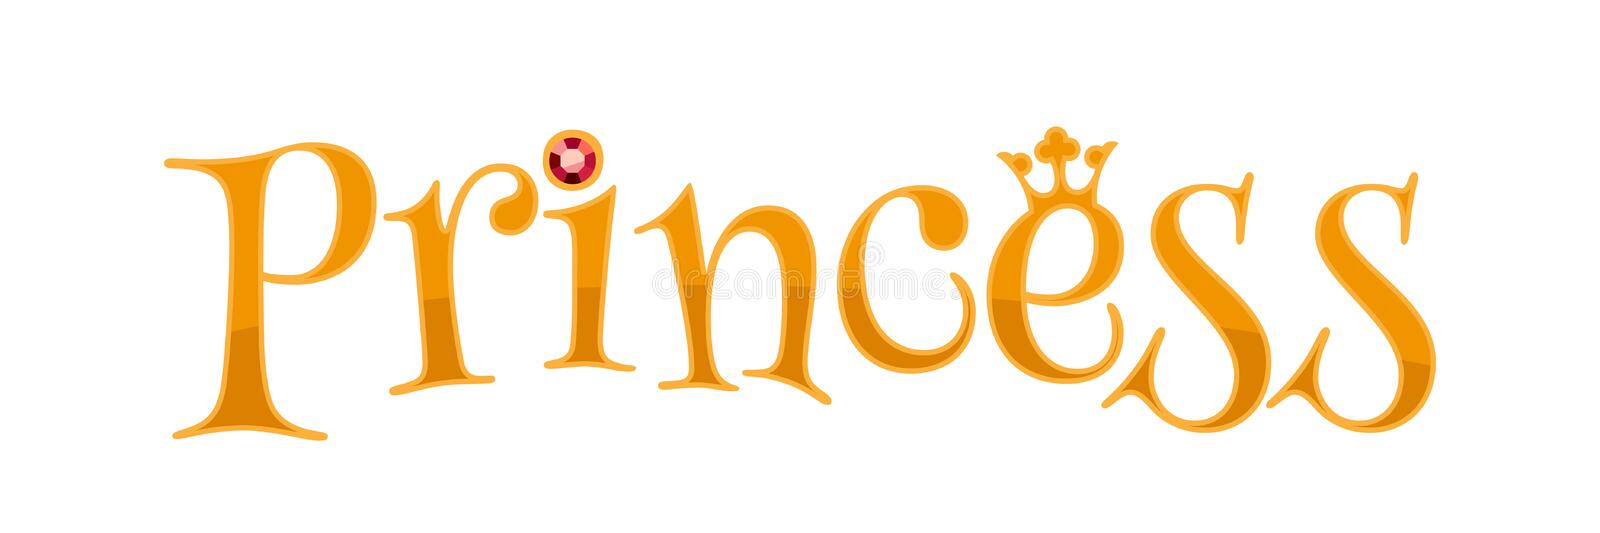 Princess word - golden letters. Princess word - golden letters with crown and ruby gemstone stock illustration